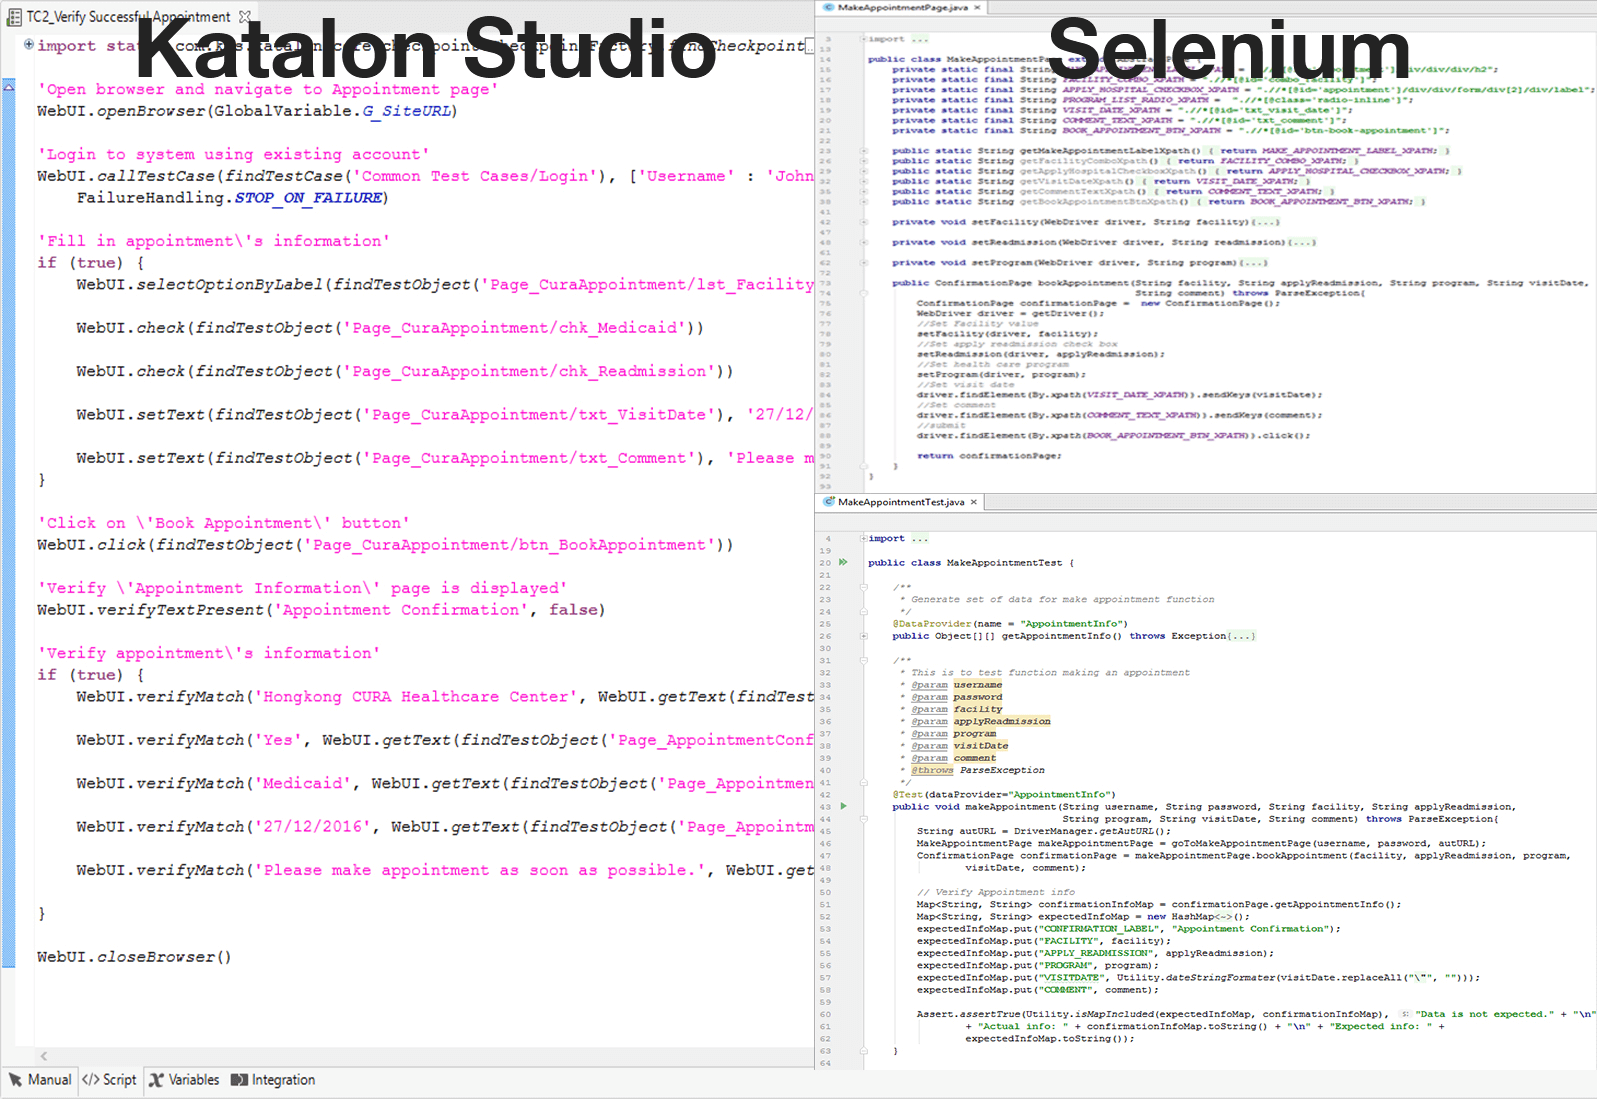 Katalon Studio compared to Selenium